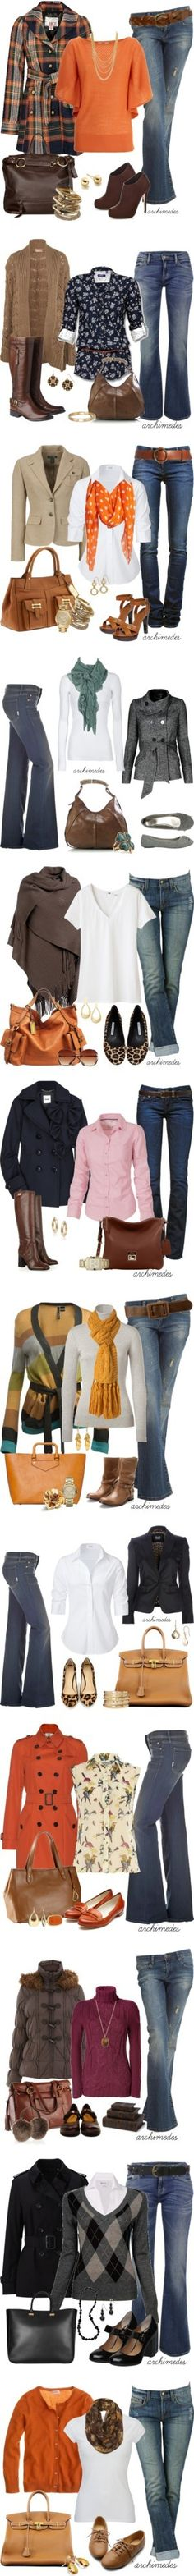 Cute fall outfits: I love jackets.  I wish pinning made it show up in my closet